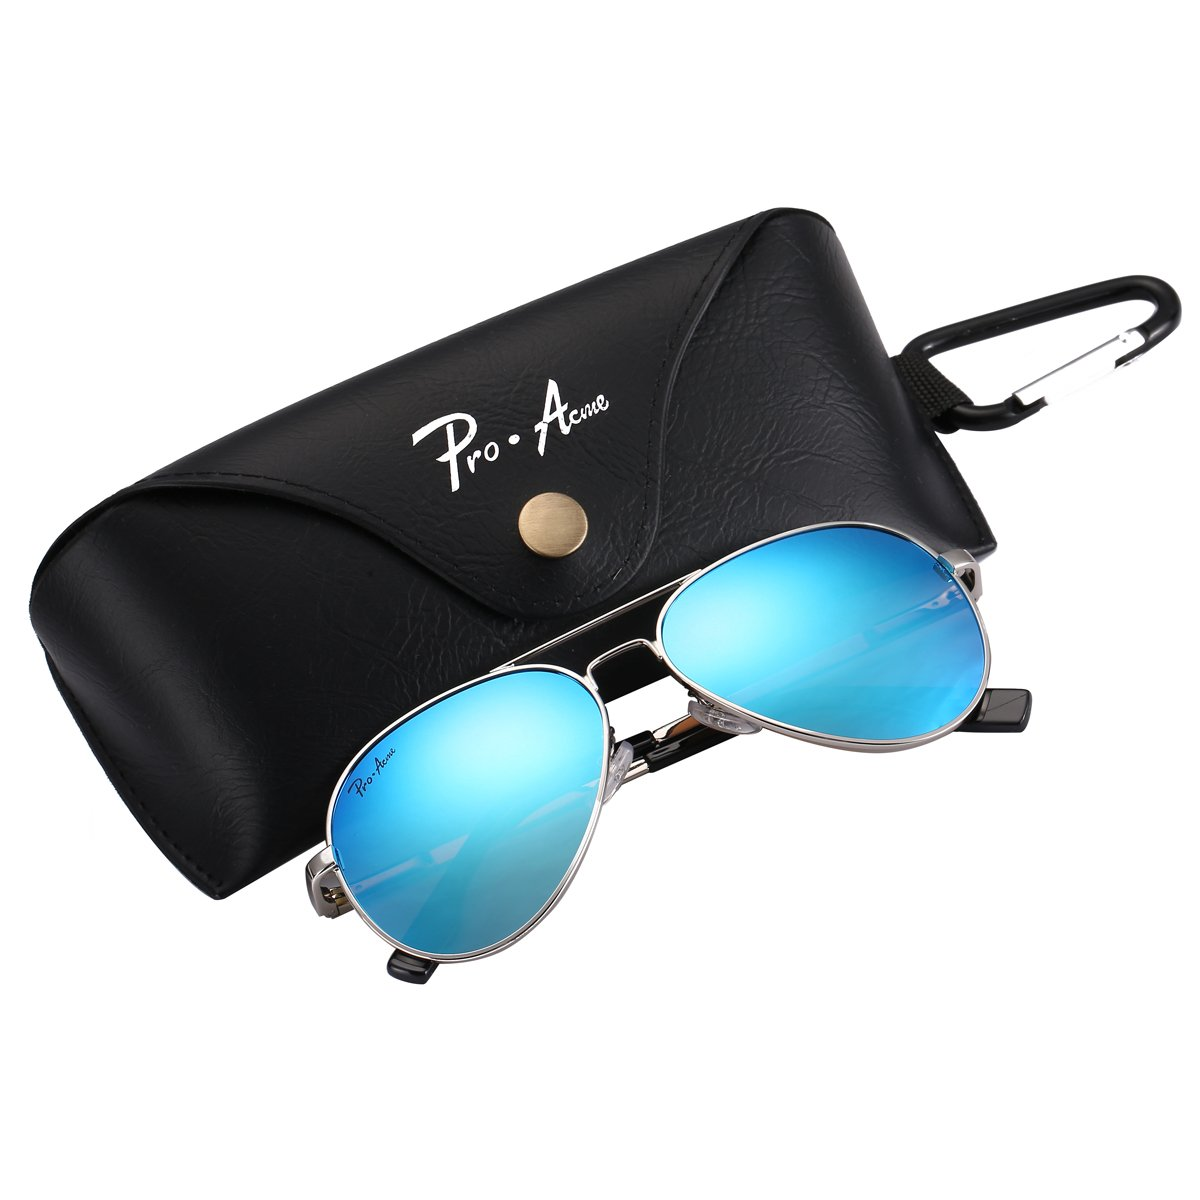 Pro Acme Small Polarized Aviator Sunglasses for Adult Small Face and Junior,52mm (Silver Frame/Blue Mirrored Lens) by Pro Acme